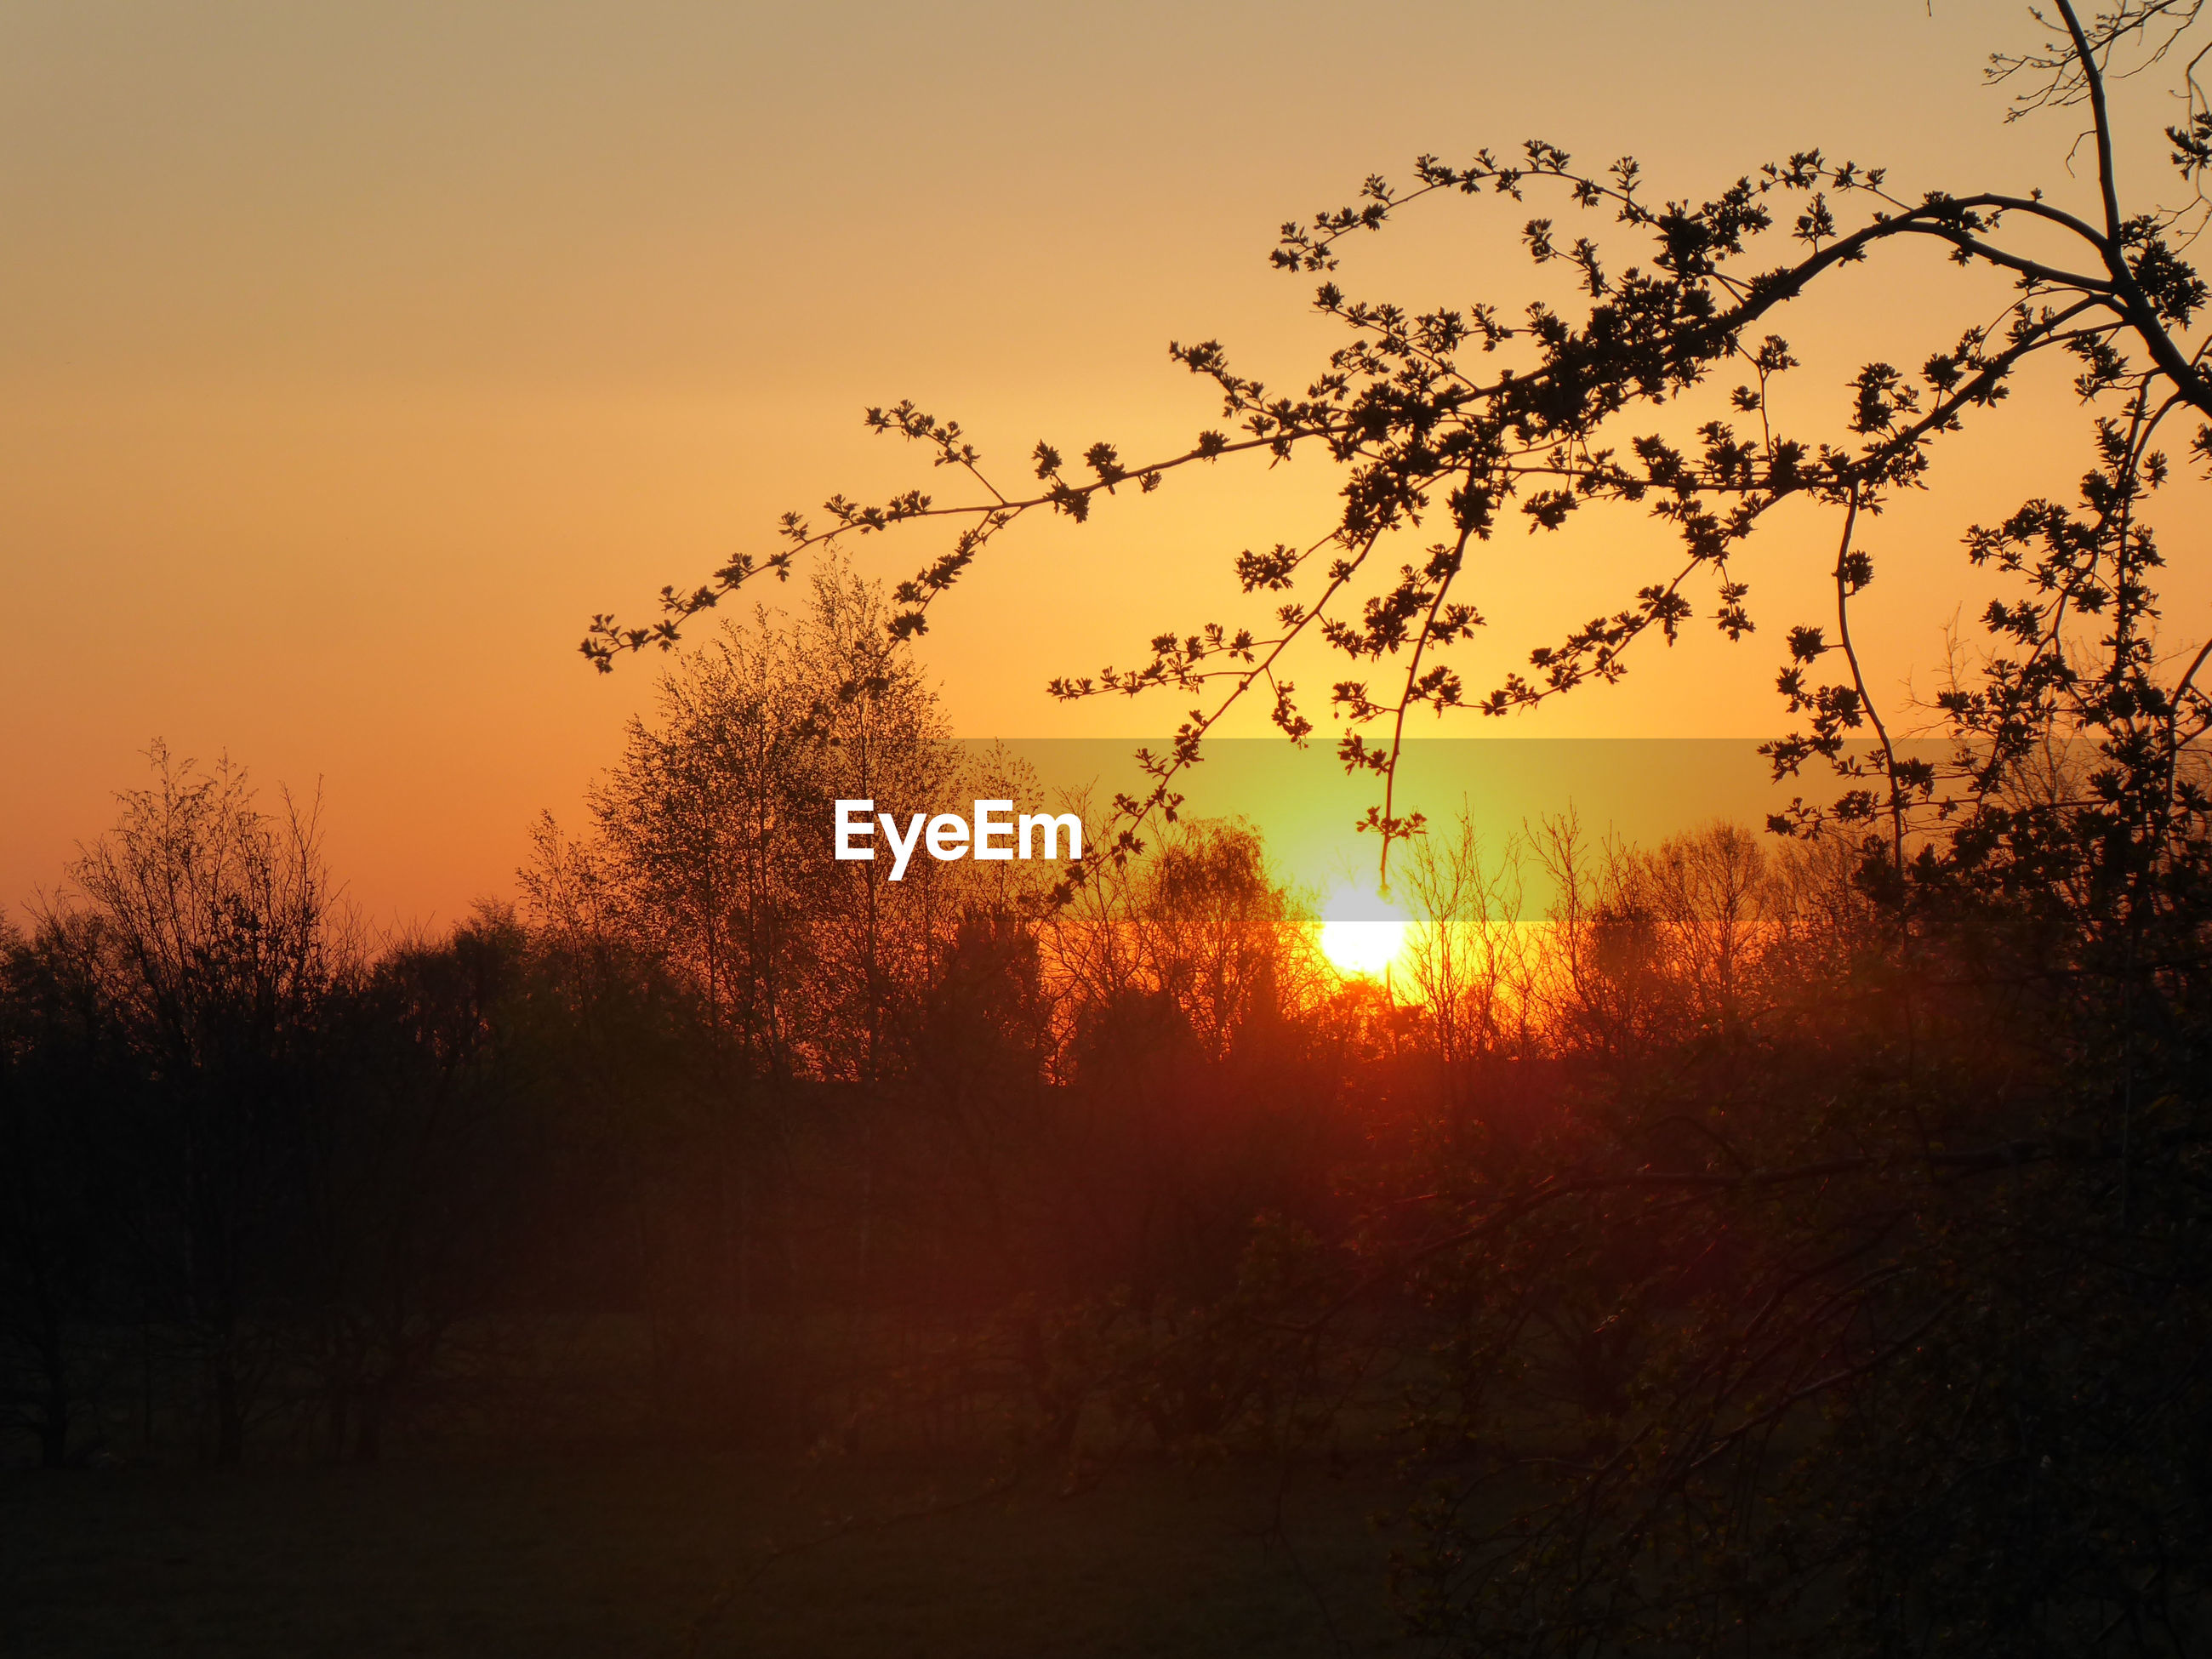 sunset, sky, plant, beauty in nature, tranquility, tree, tranquil scene, silhouette, orange color, scenics - nature, nature, growth, no people, non-urban scene, sun, idyllic, land, field, outdoors, sunlight